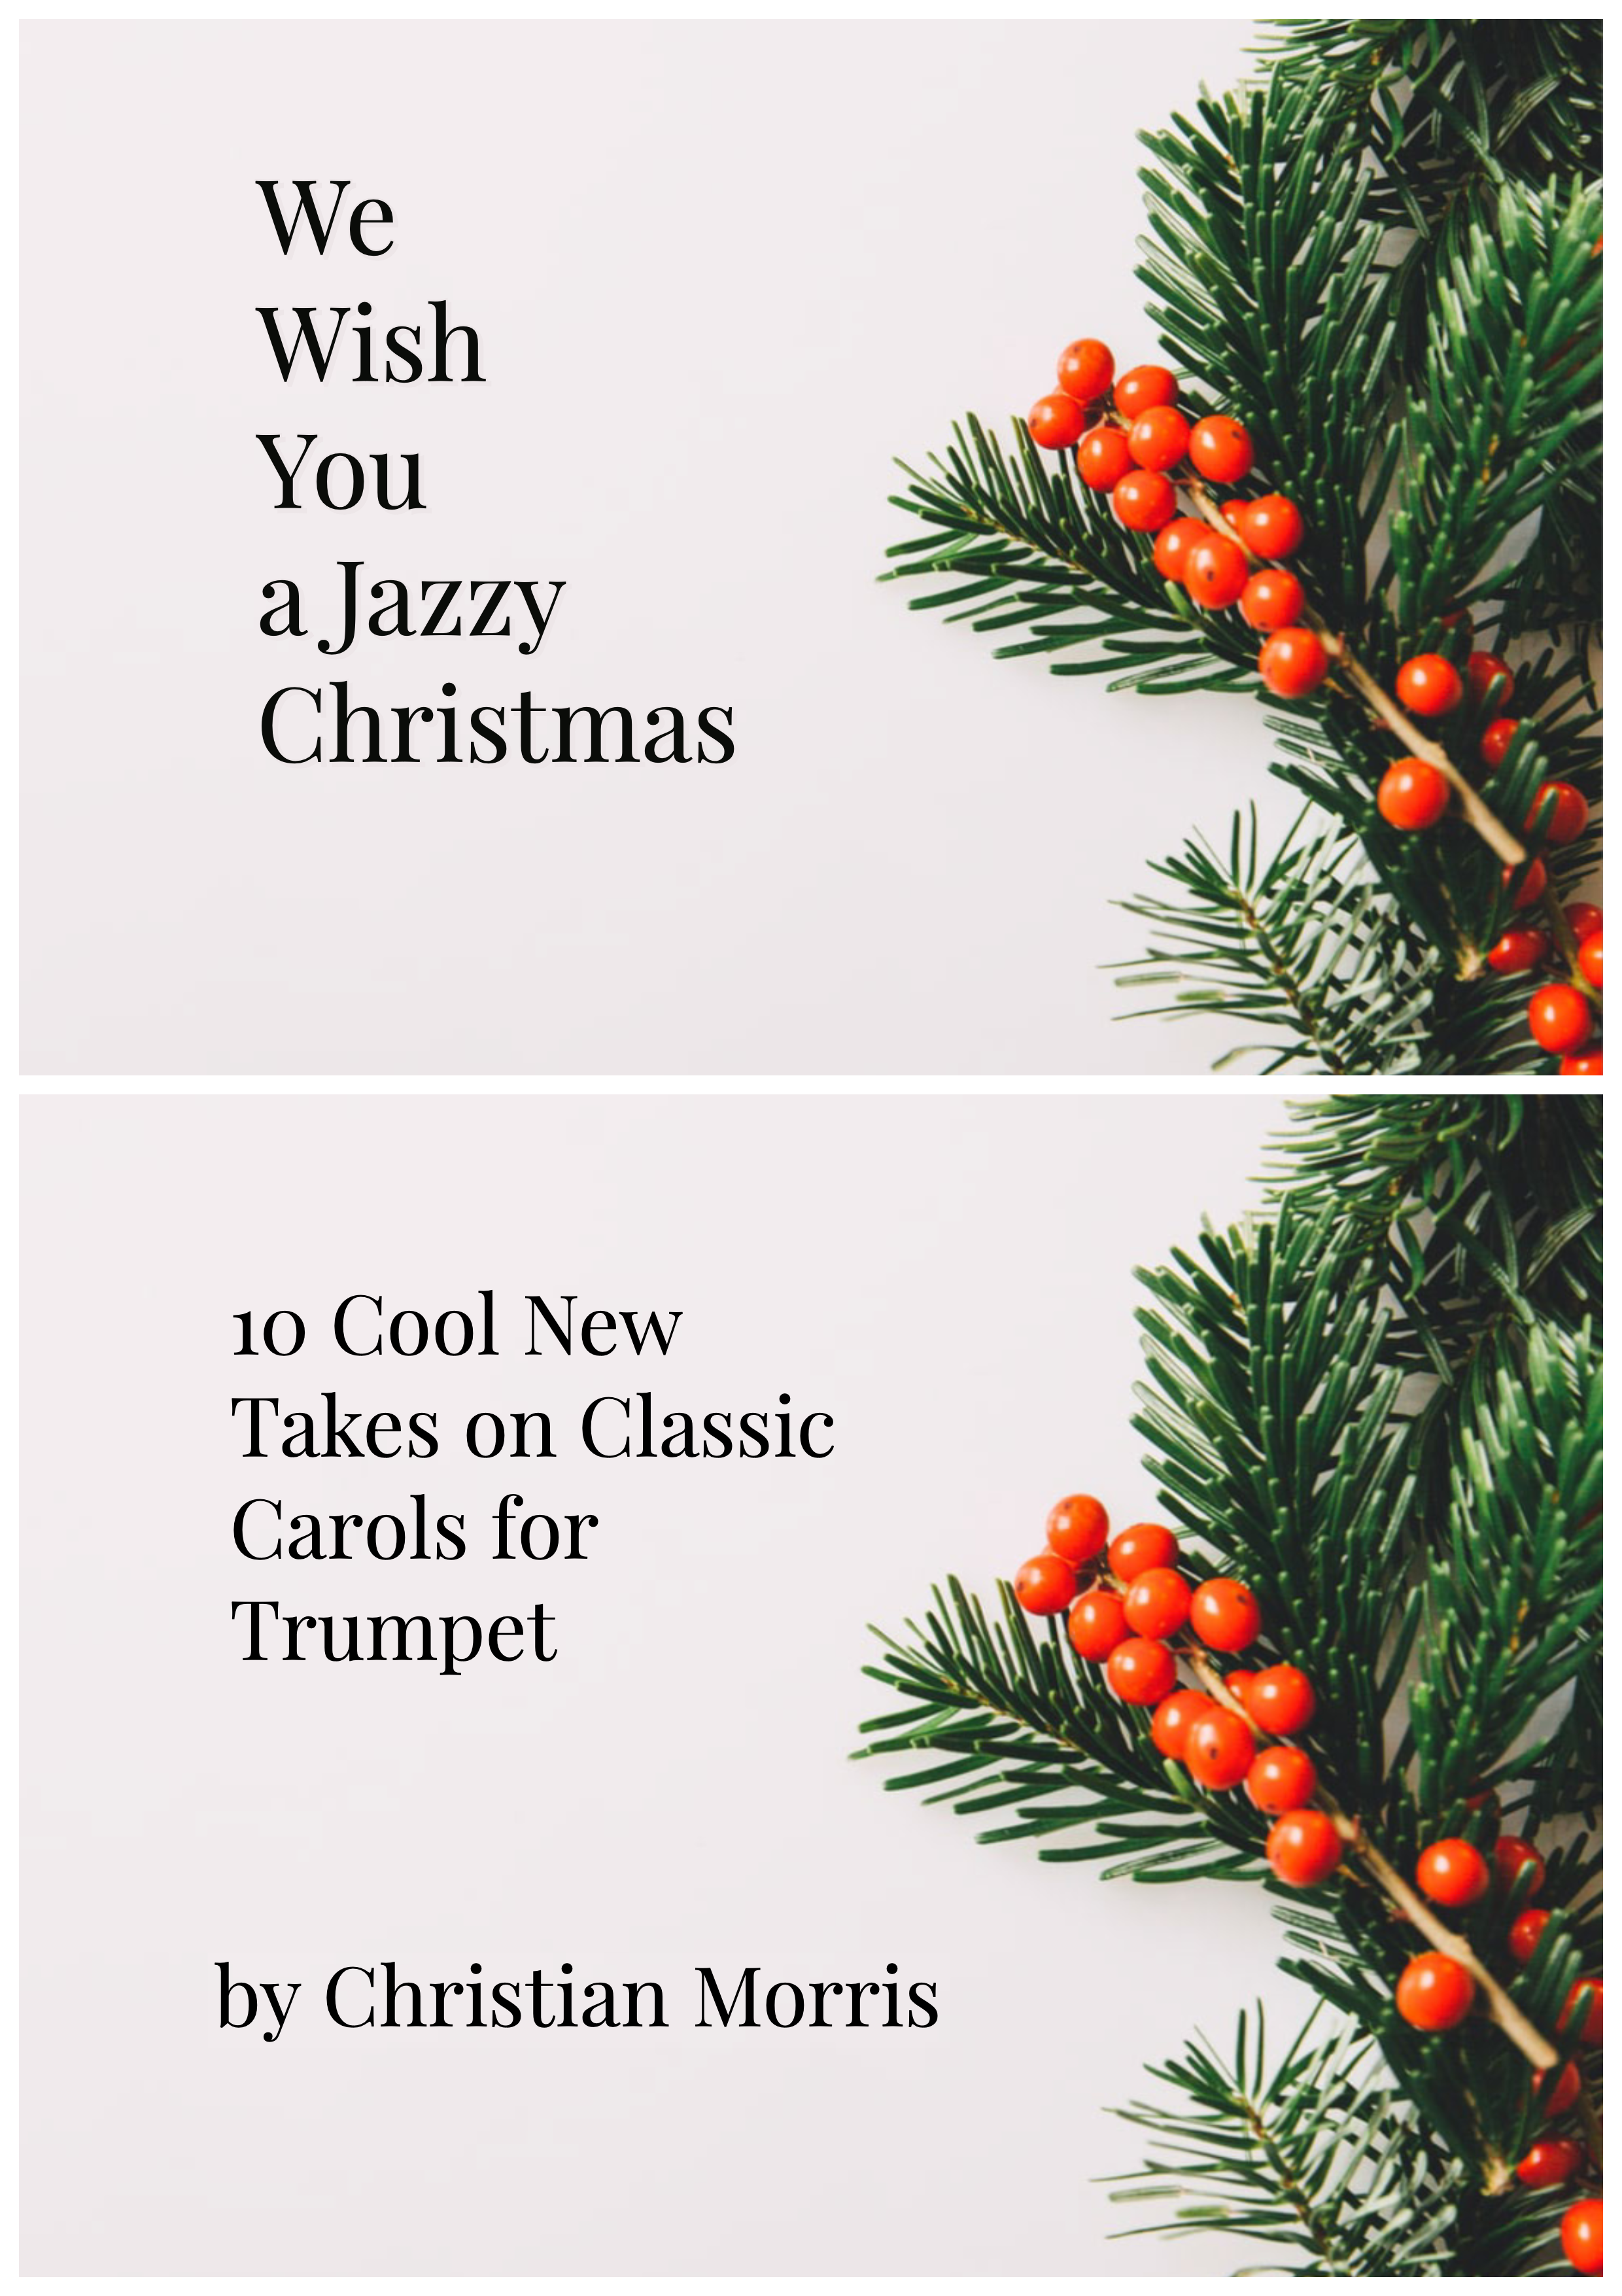 We Wish You A Jazzy Christmas (Ten Cool New Takes on Classic Carols) for Trumpet